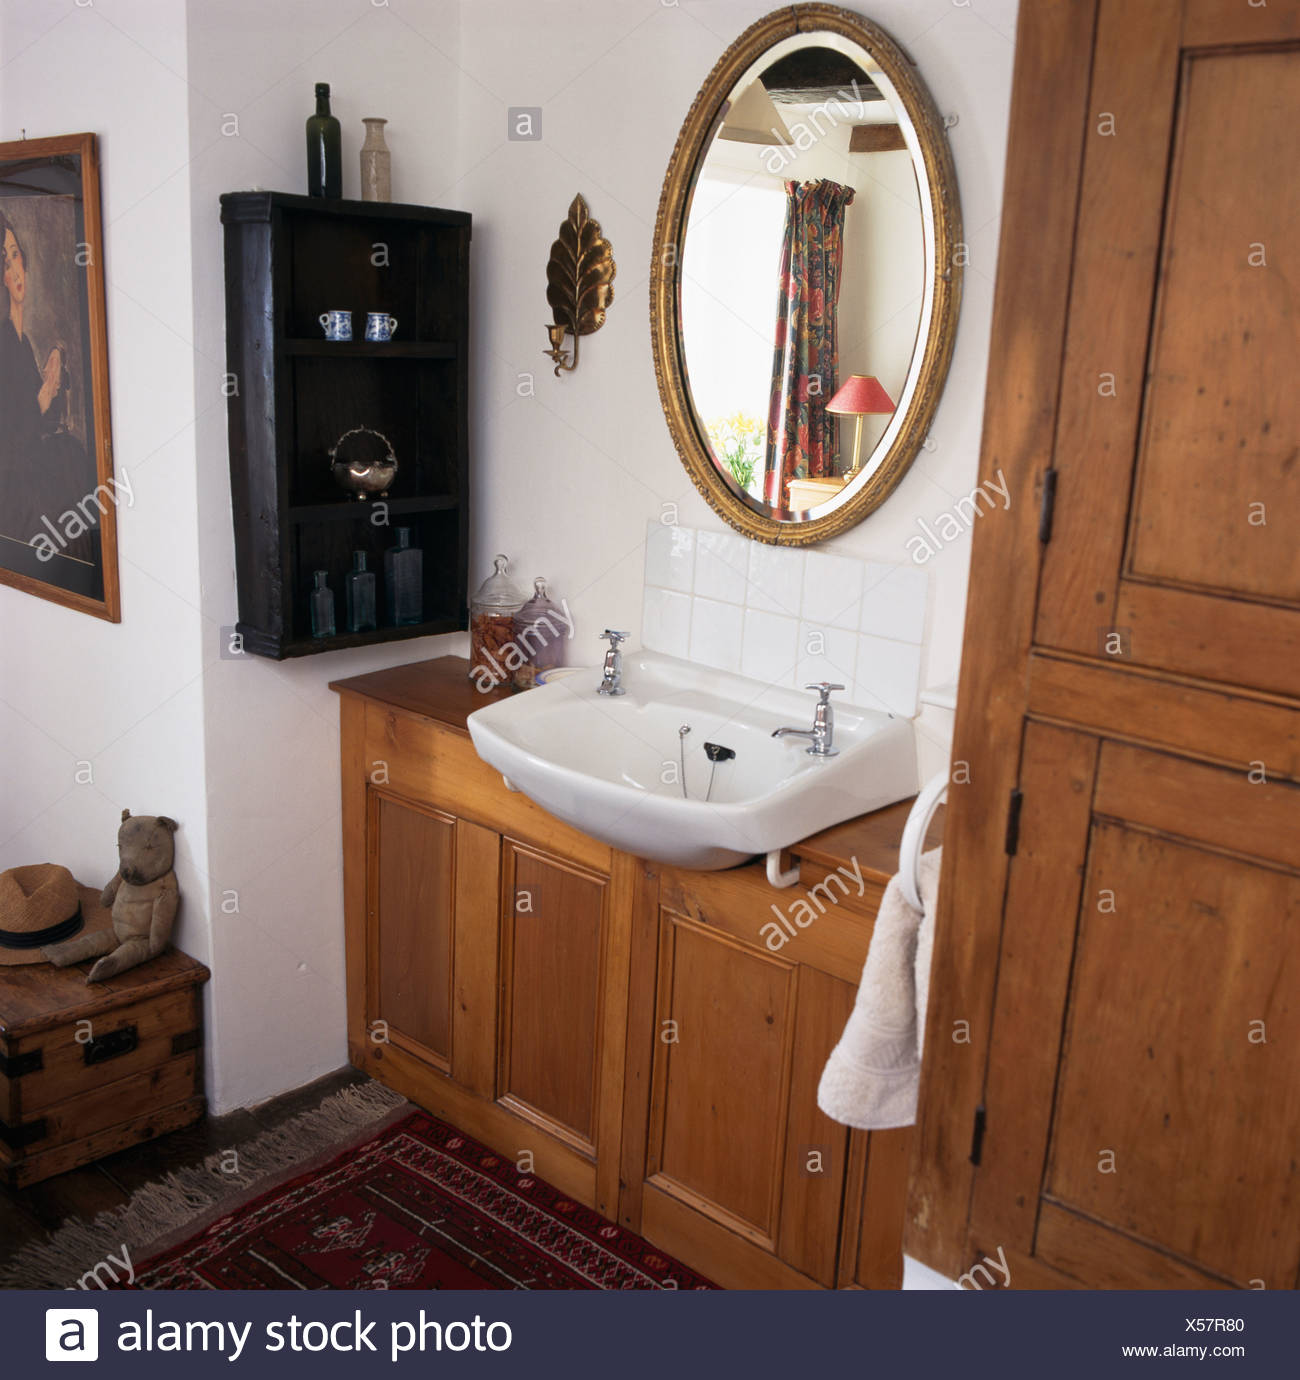 Oval Mirror Above Basin In Fitted Wood Vanity Unit In Small White Bathroom  With Antique Shelves